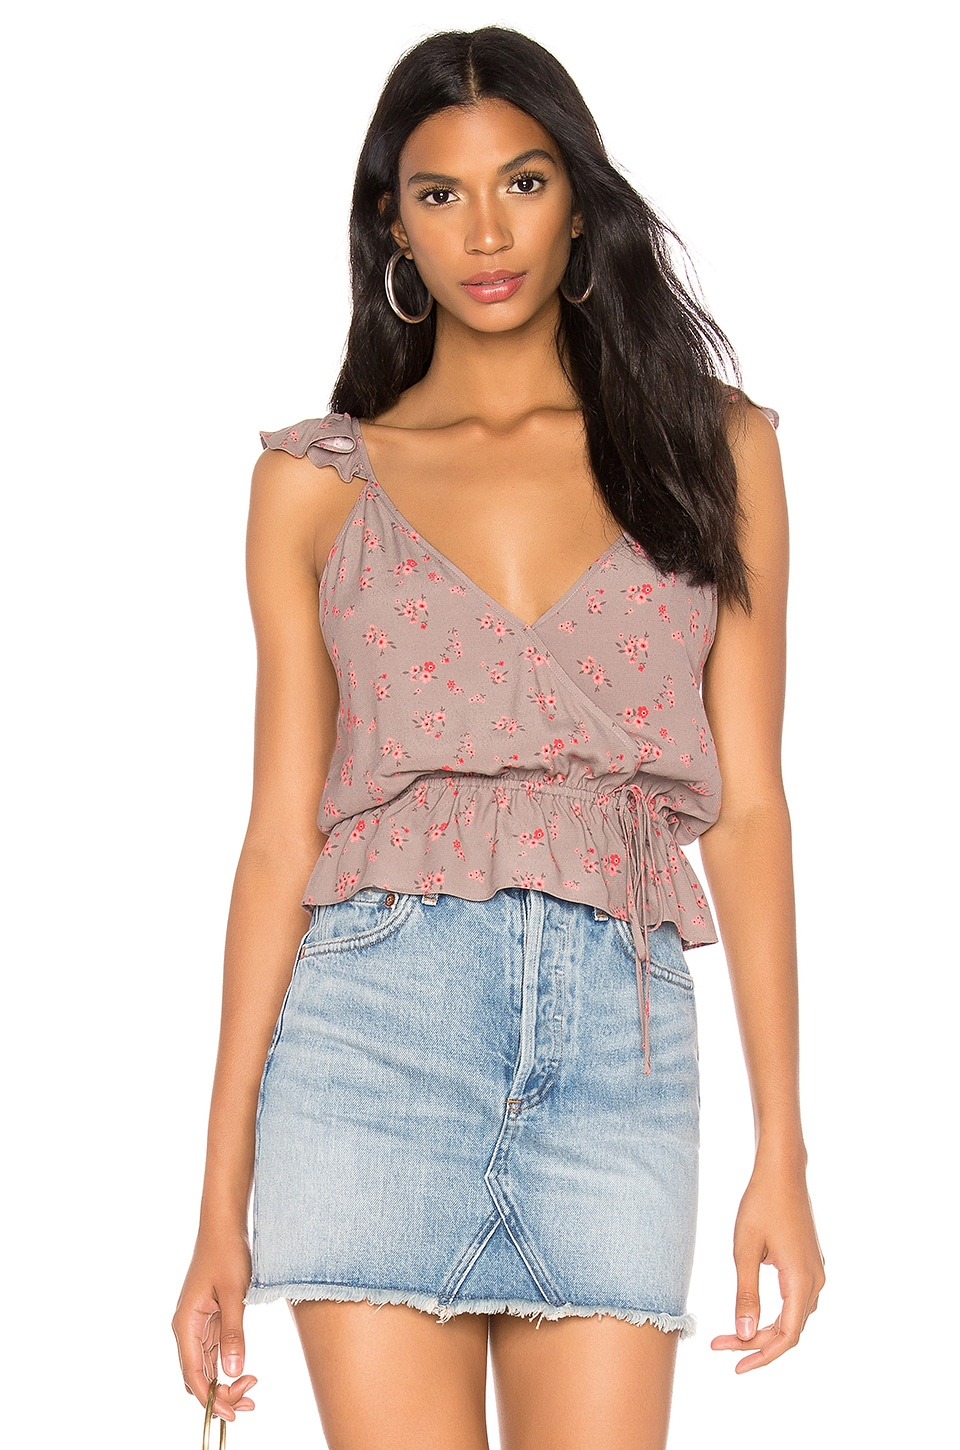 Blue Life Kaitlyn Top in Magenta Mini Floral